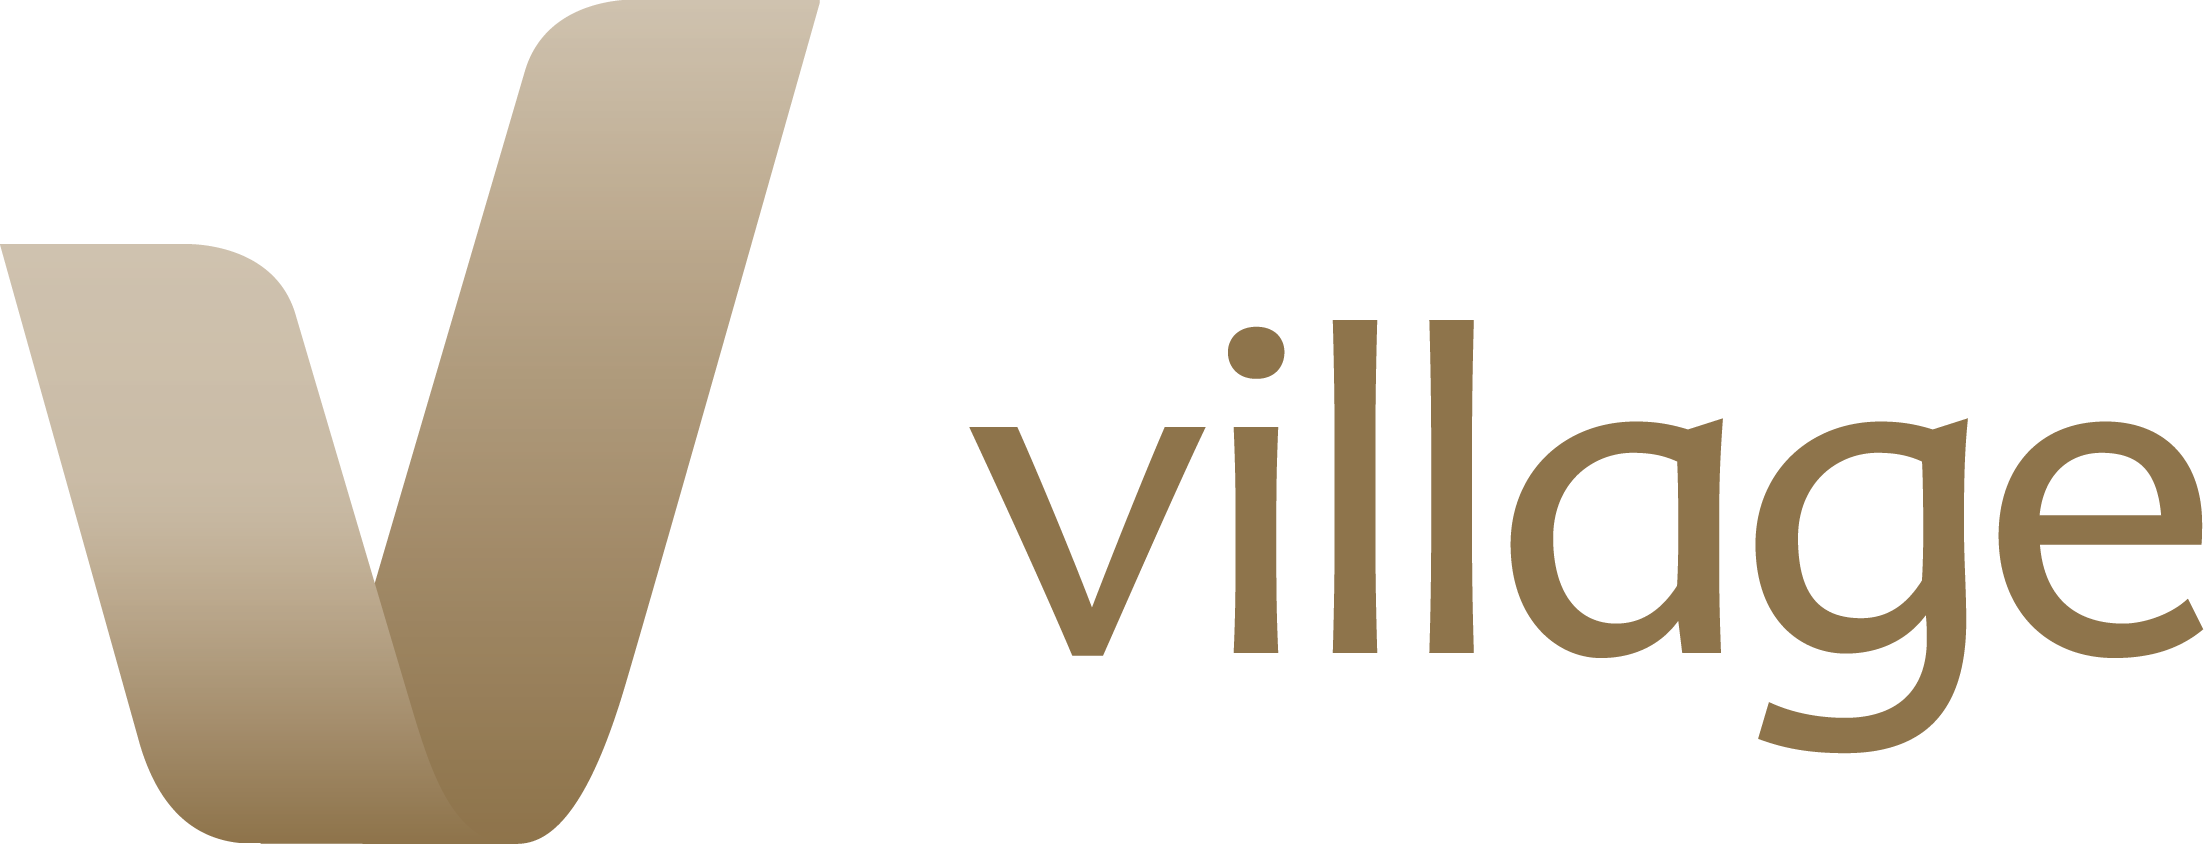 https://www.activfitness.com.sg/wp-content/uploads/2021/03/Village-FEH-logo_F2Sep2020.png